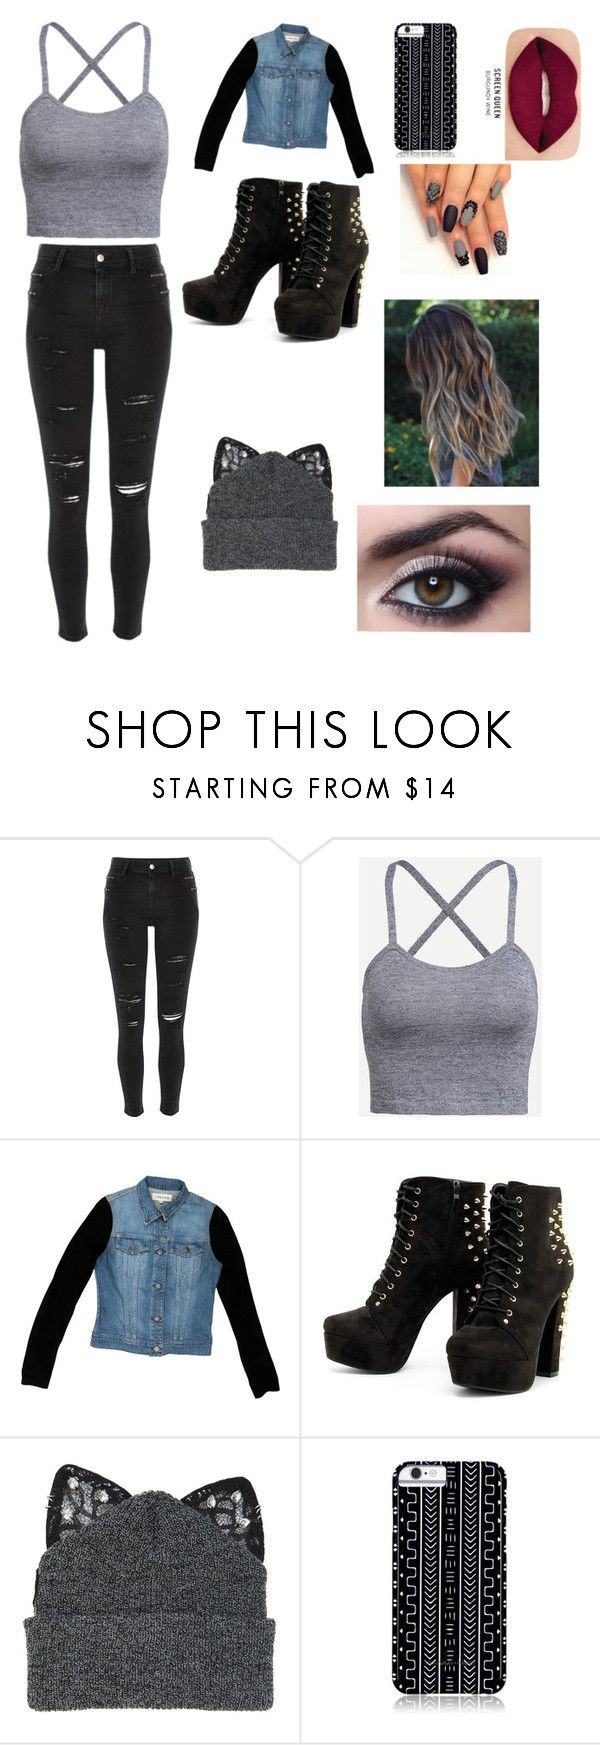 """""""Untitled #69"""" by paigebff ❤ liked on Polyvore featuring River Island, J Brand, Silver Spoon Attire, Savannah Hayes and Smashbox"""